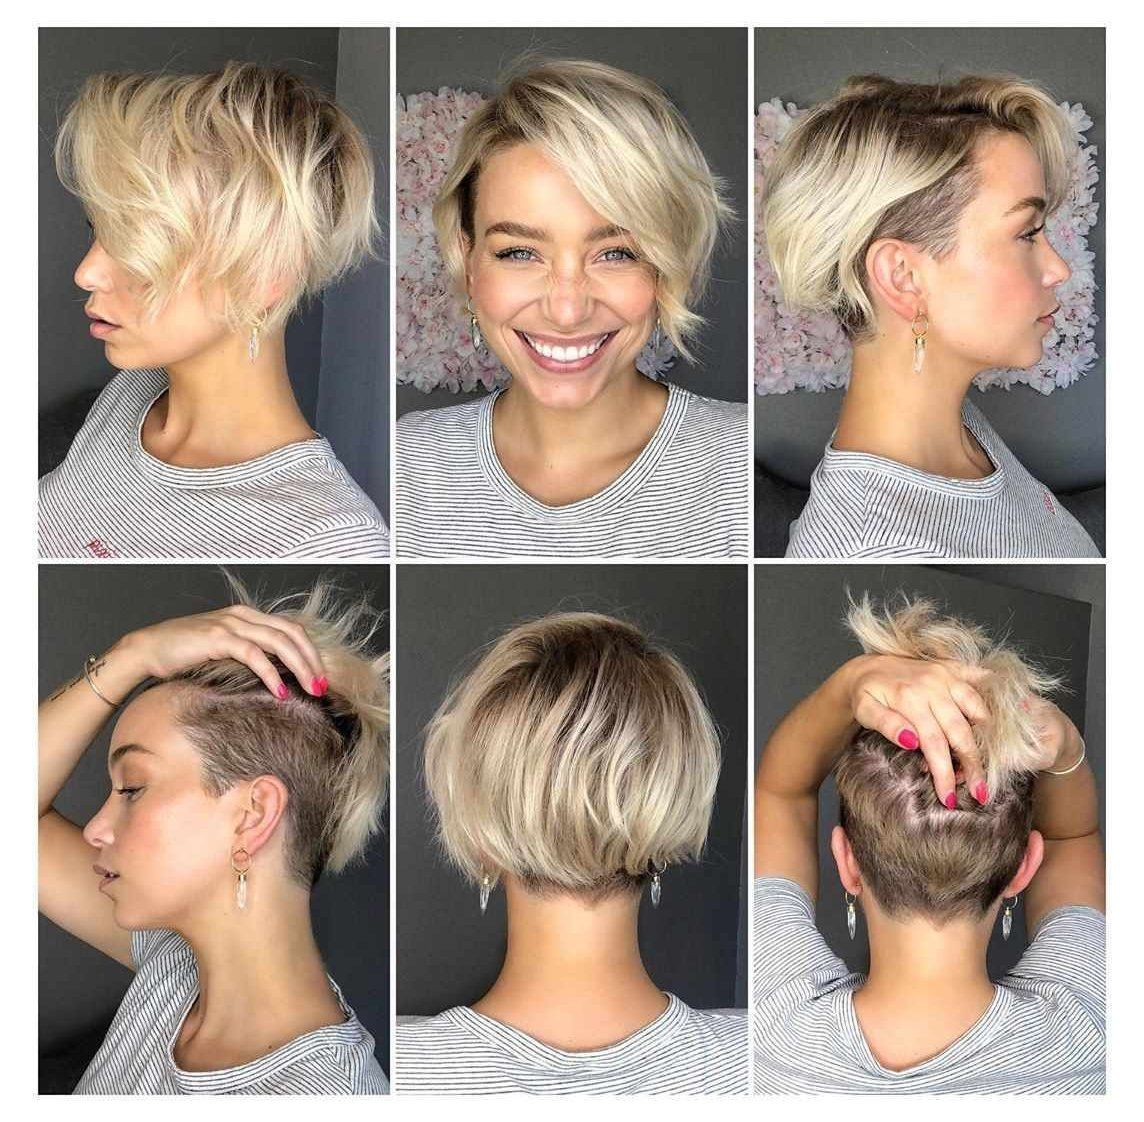 Prom Hairstyles For Short Hair Tips And Advice Hairstyle Ideas Women 188263 Short Hair Shorthair Prom In 2020 Short Hair Styles Hair Styles Short Hair Undercut